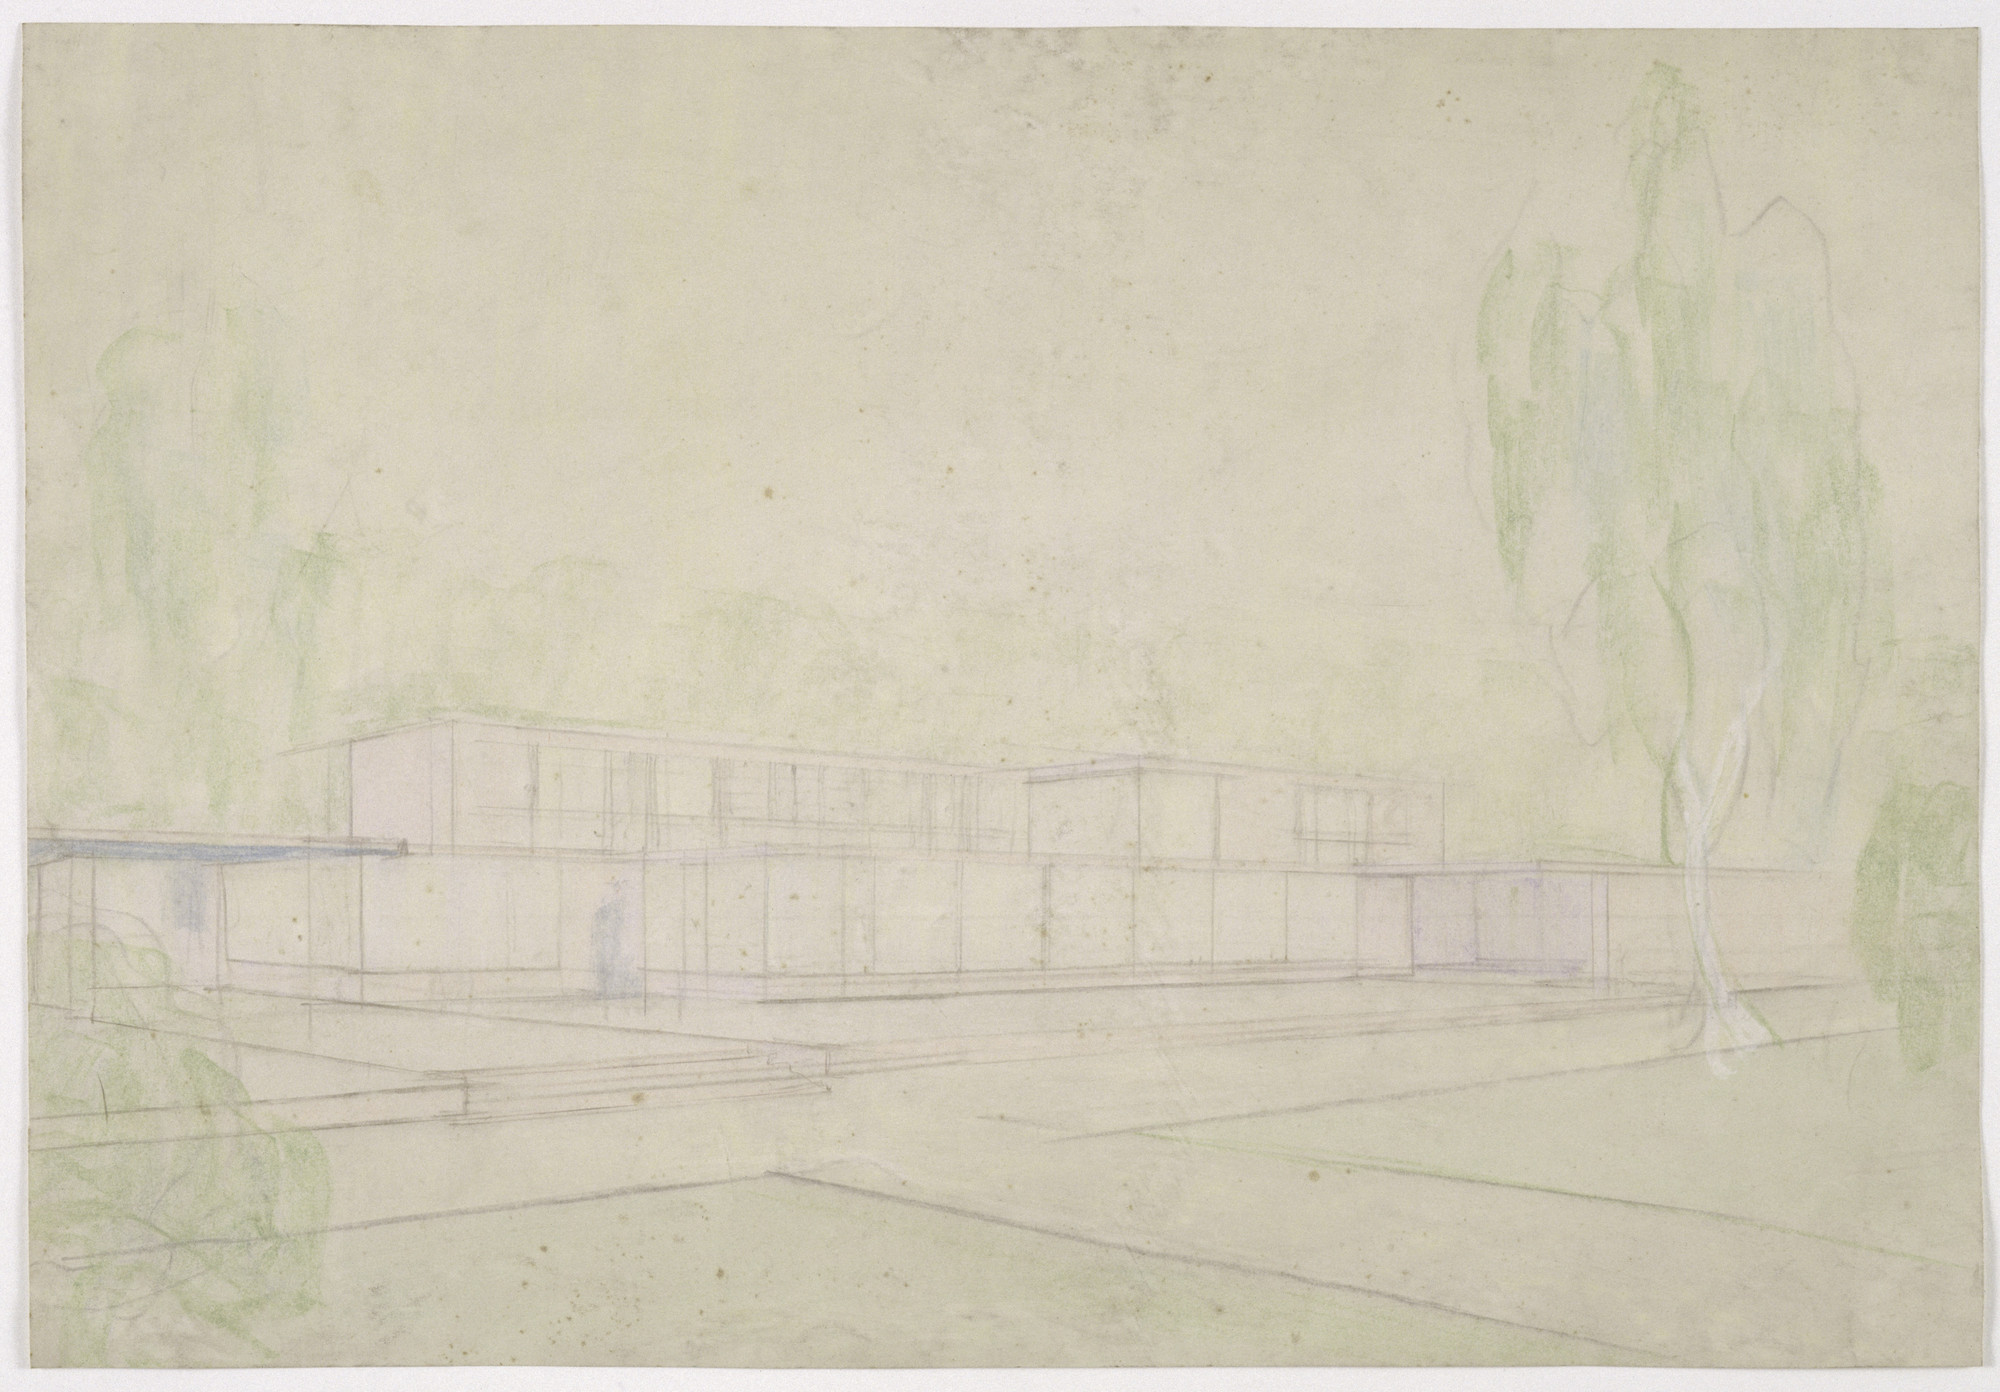 Ludwig Mies van der Rohe. Josef Esters House, Krefeld, Germany, Perspective study of garden façade. c. 1927-1930